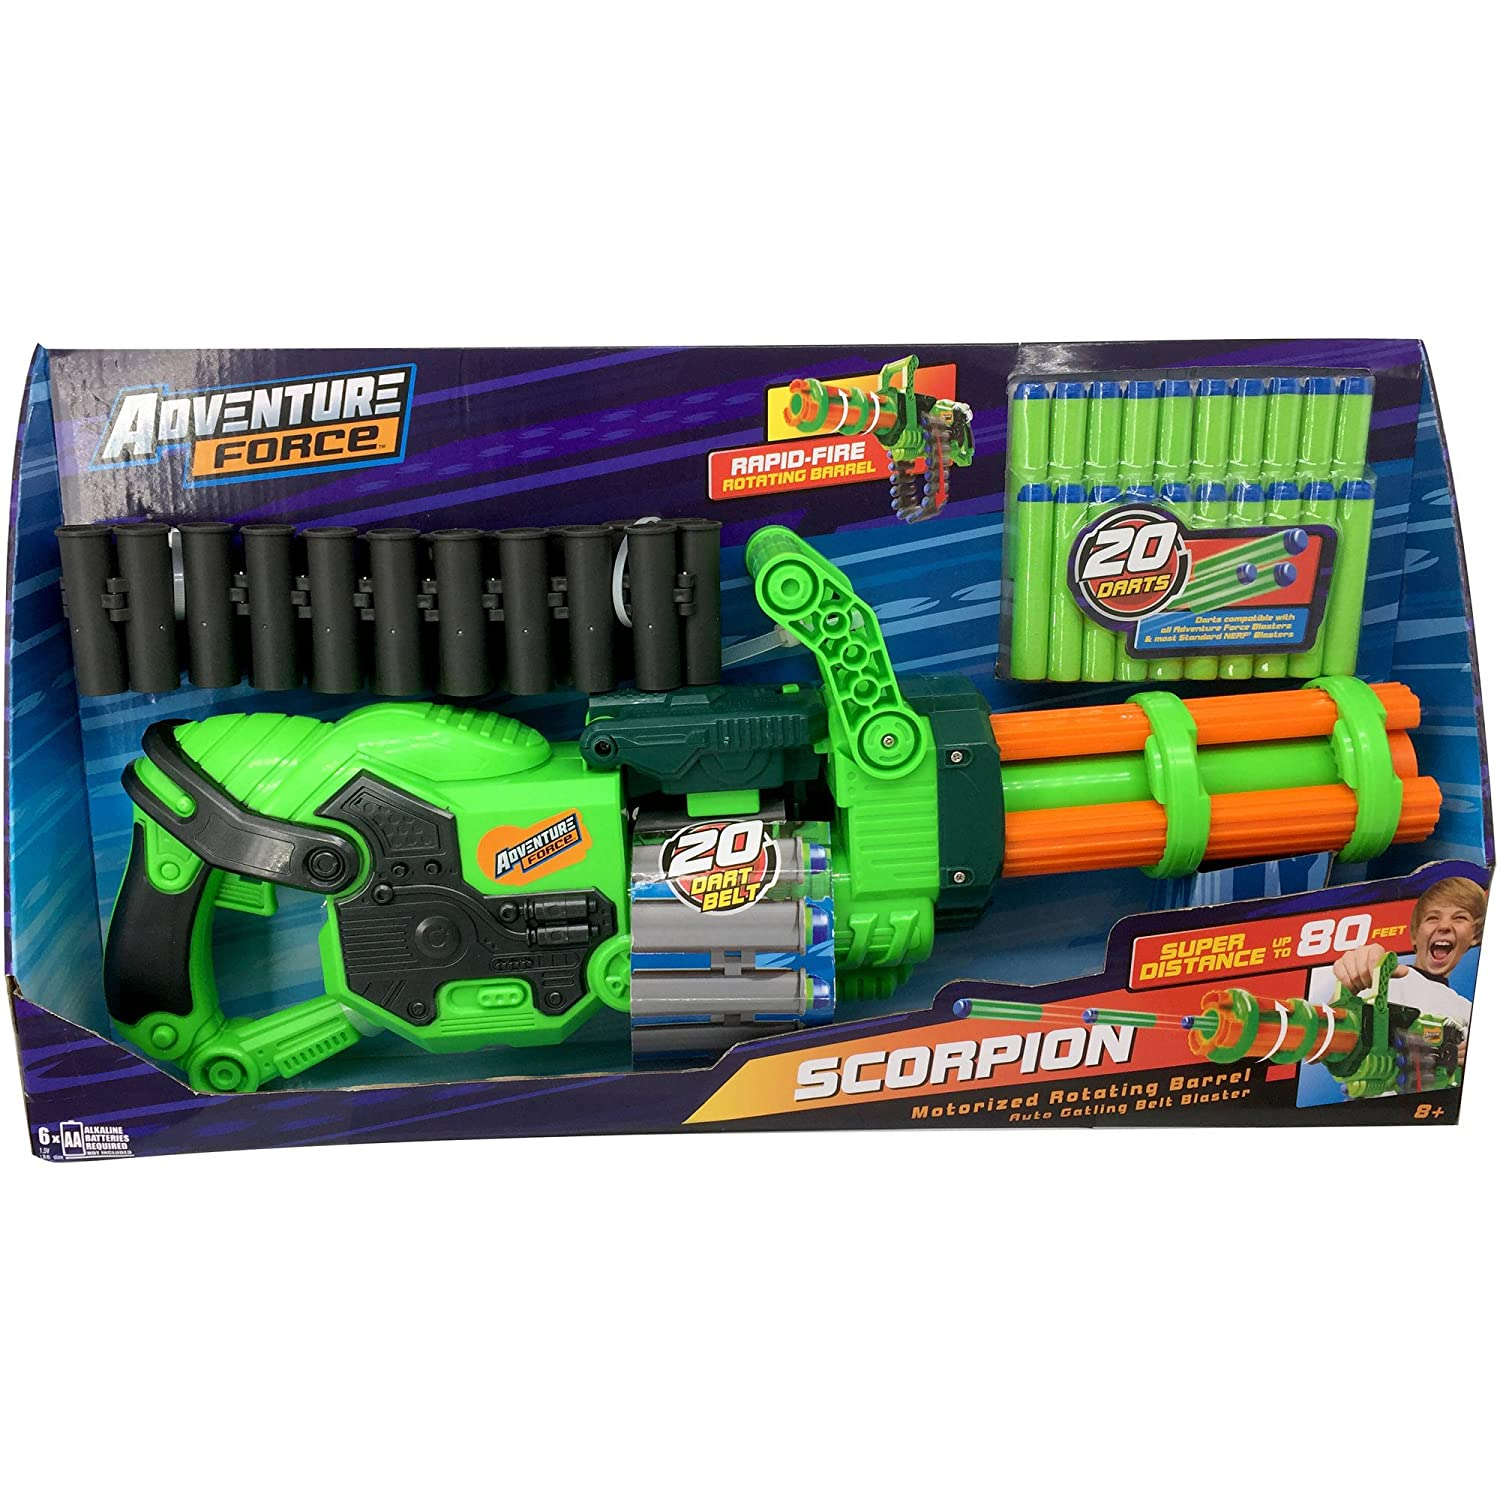 Adventure Force Scorpion Motorized Gatling Dart Blaster Toy by Dart Zone